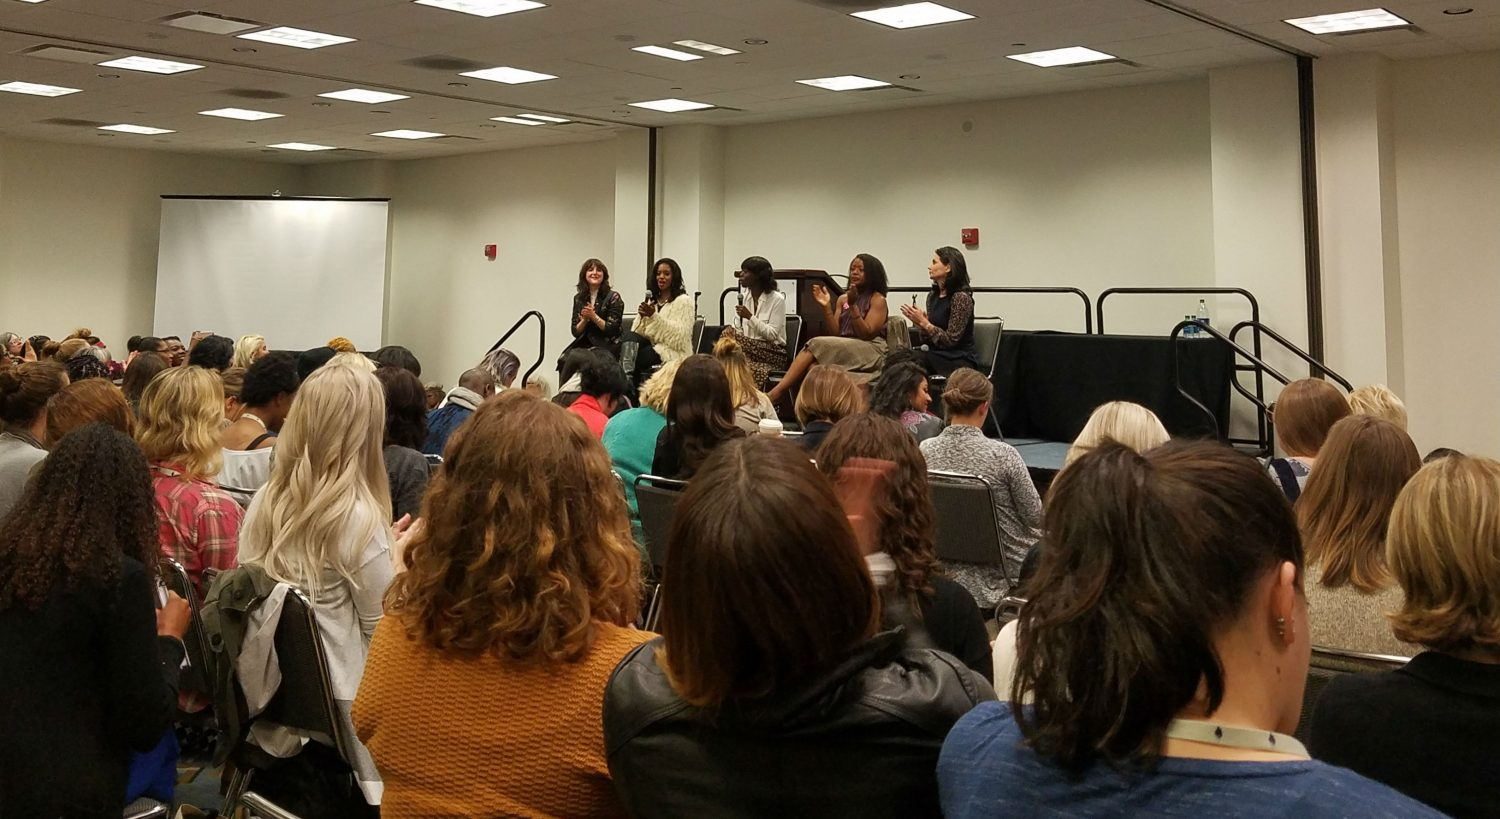 Women business owners and leaders address a packed room at the Women's Convention. (L to R: Piera Gelardi, co-founder of women's media company Refinery29; lifestyle brand owner Arian Simone; discussion leader and serial entrepreneur Dee Poku; designer Tracy Reese; Jennifer DaSilva, president of advertising agency Berlin Cameron.)